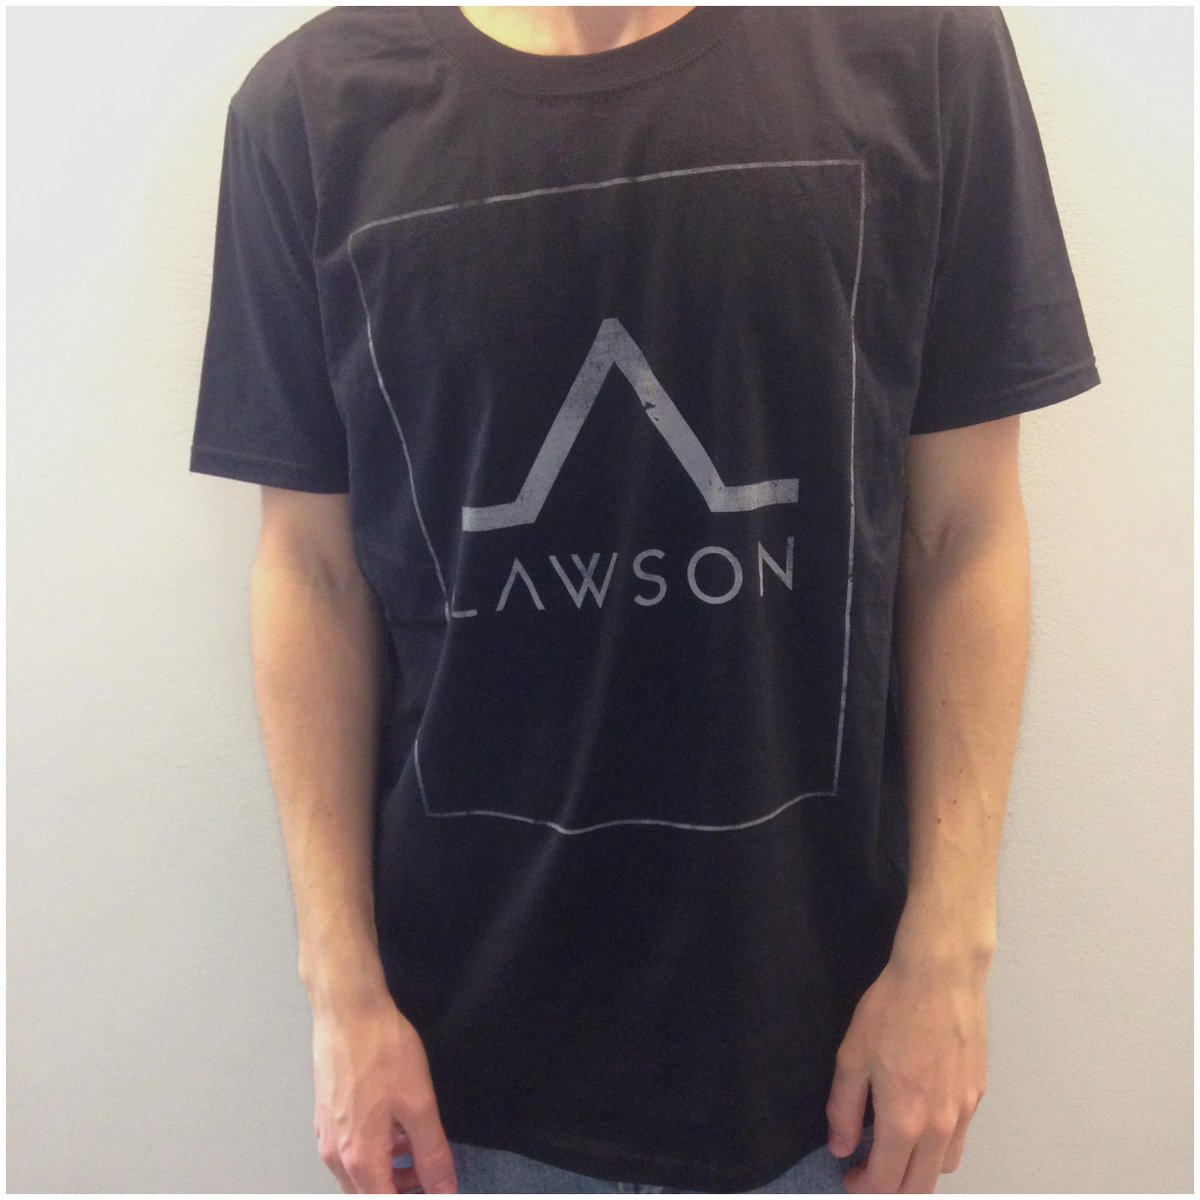 We've got one of these tour t-shirts to give away. Size M. Simply RT this to win and we'll pick a winner tomorrow! http://t.co/d3DjYMjjXq